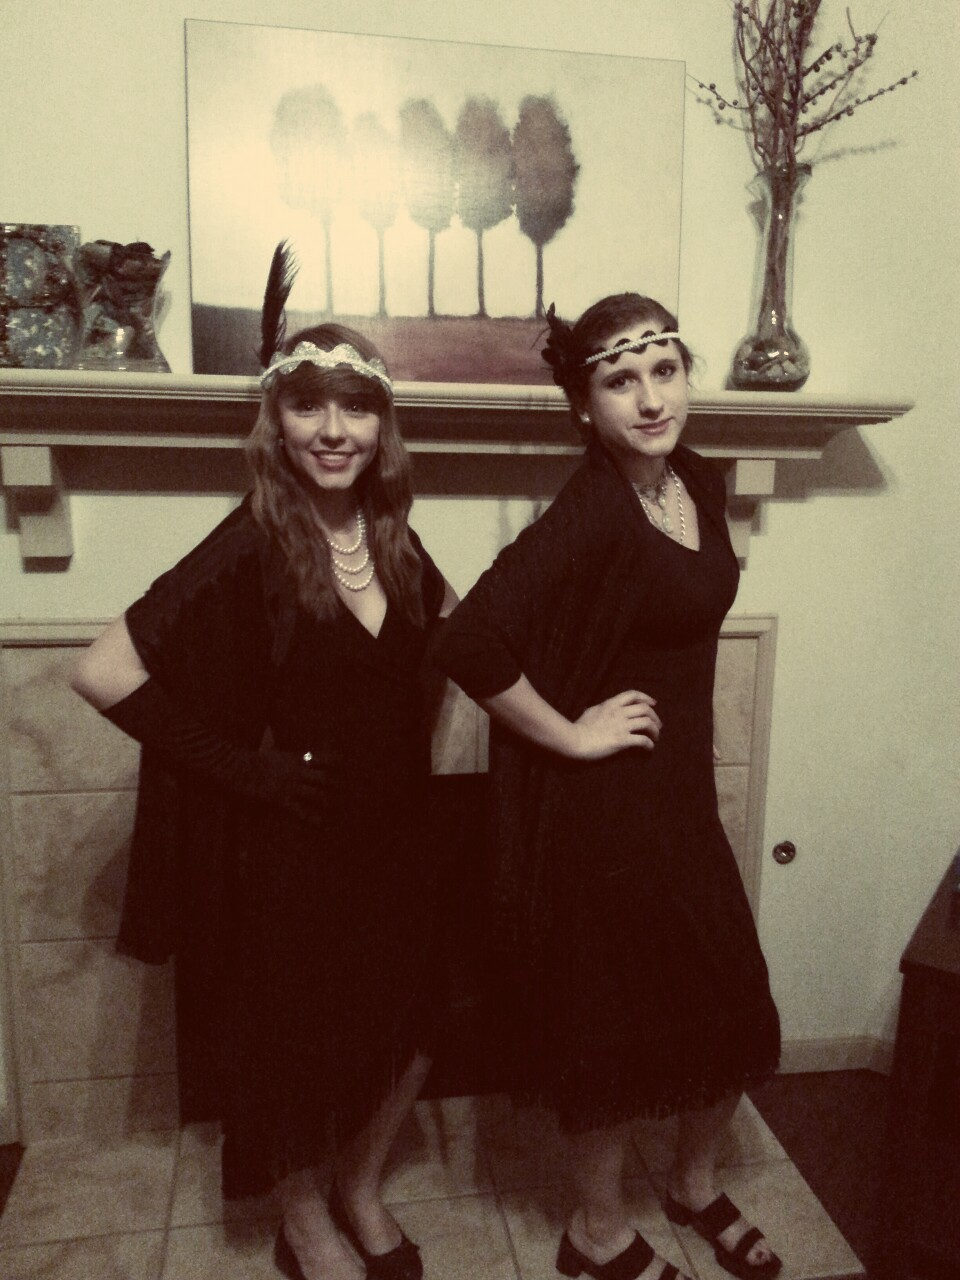 Handmade flapper costumes for the Great Gatsby midnight showing last night!